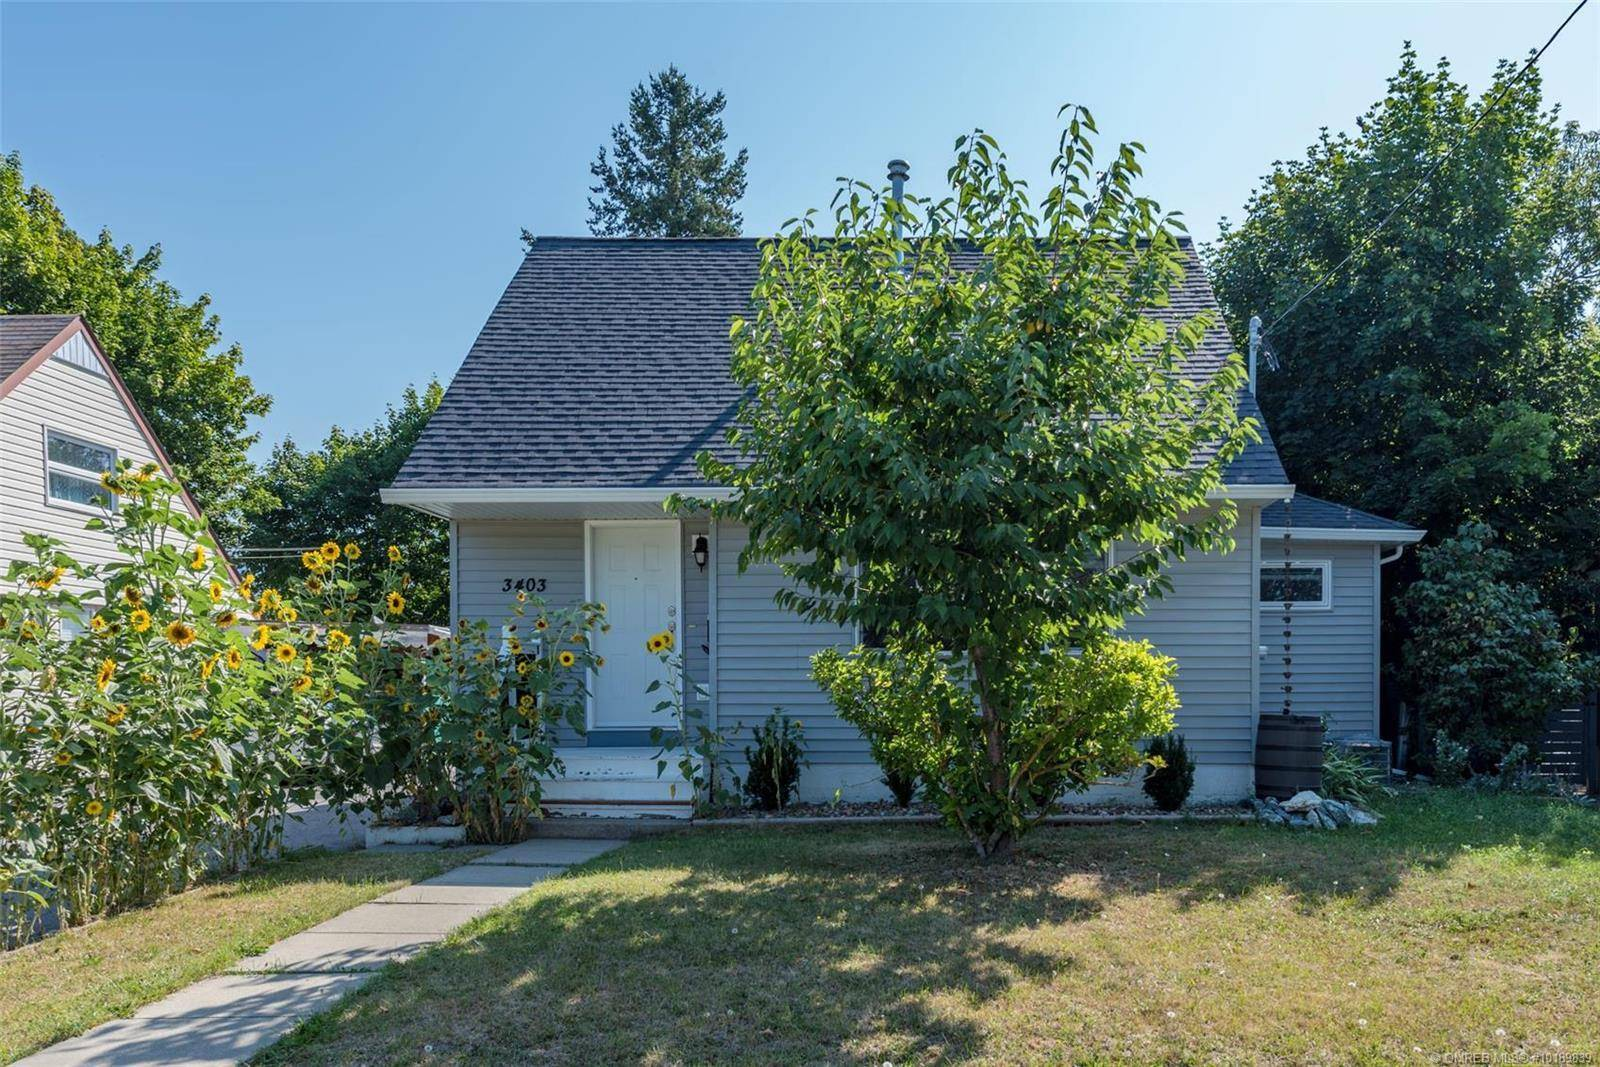 House for sale at 3403 16 St Vernon British Columbia - MLS: 10189839